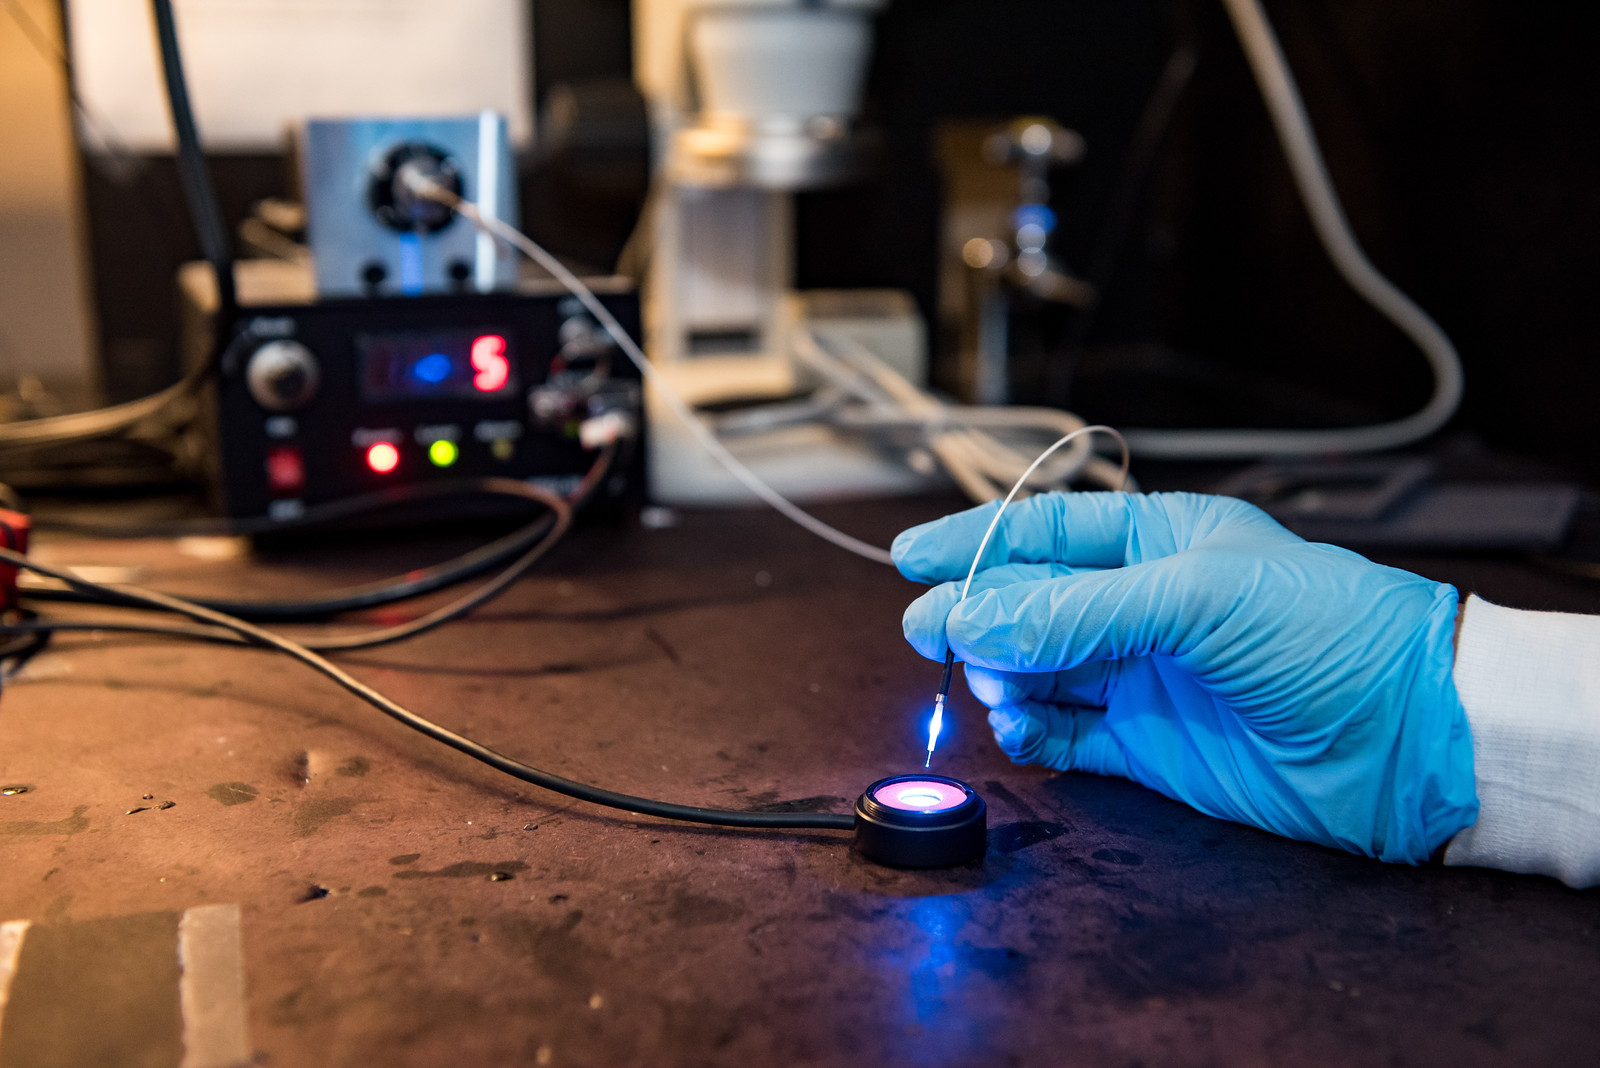 a gloved hand working with a lighted piece of scientific equipment